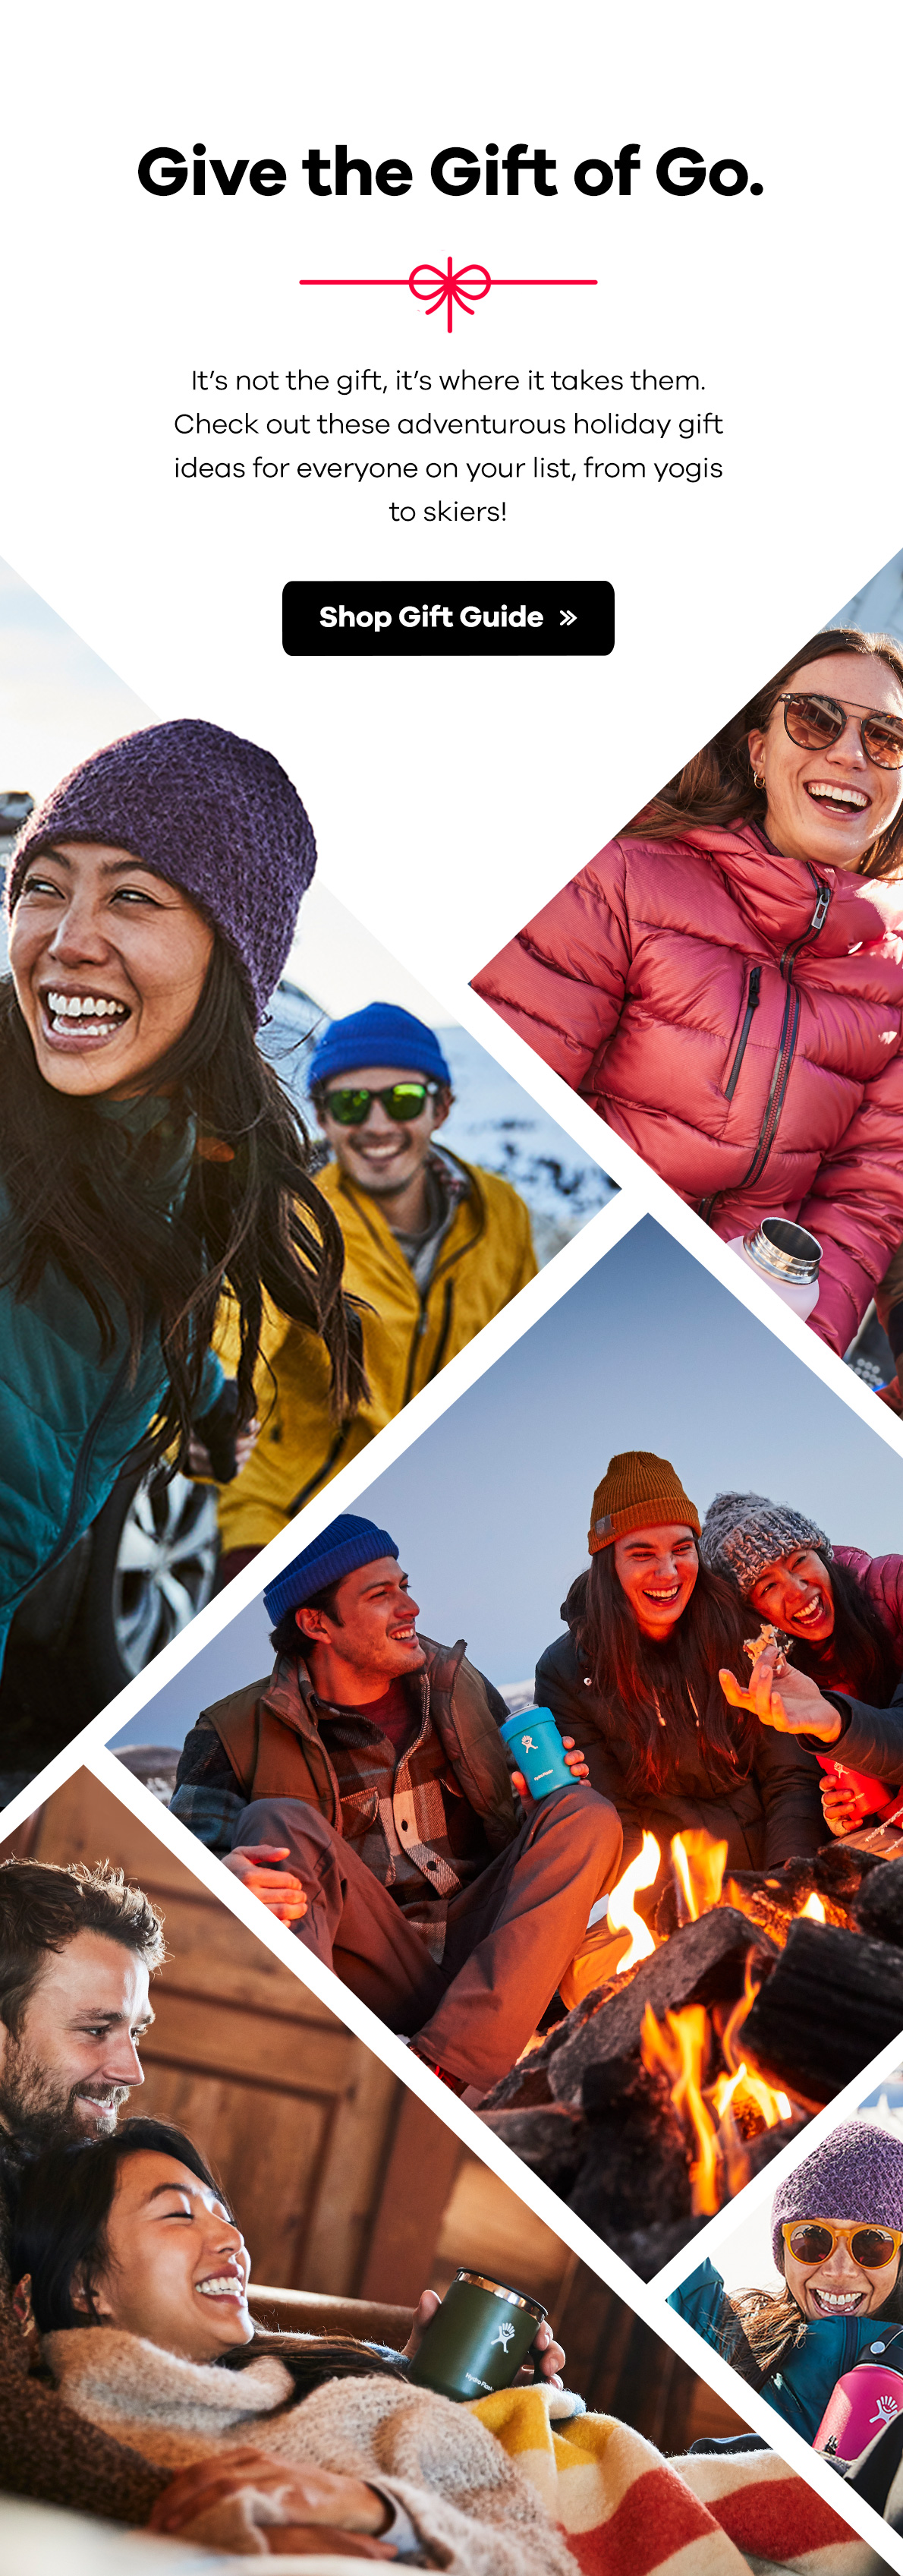 Give the Gift of Go | It's not the gift, it's where it takes them. Check out these adventurous holiday gift ideas for everyone on your list, from yogis to skiers! >>